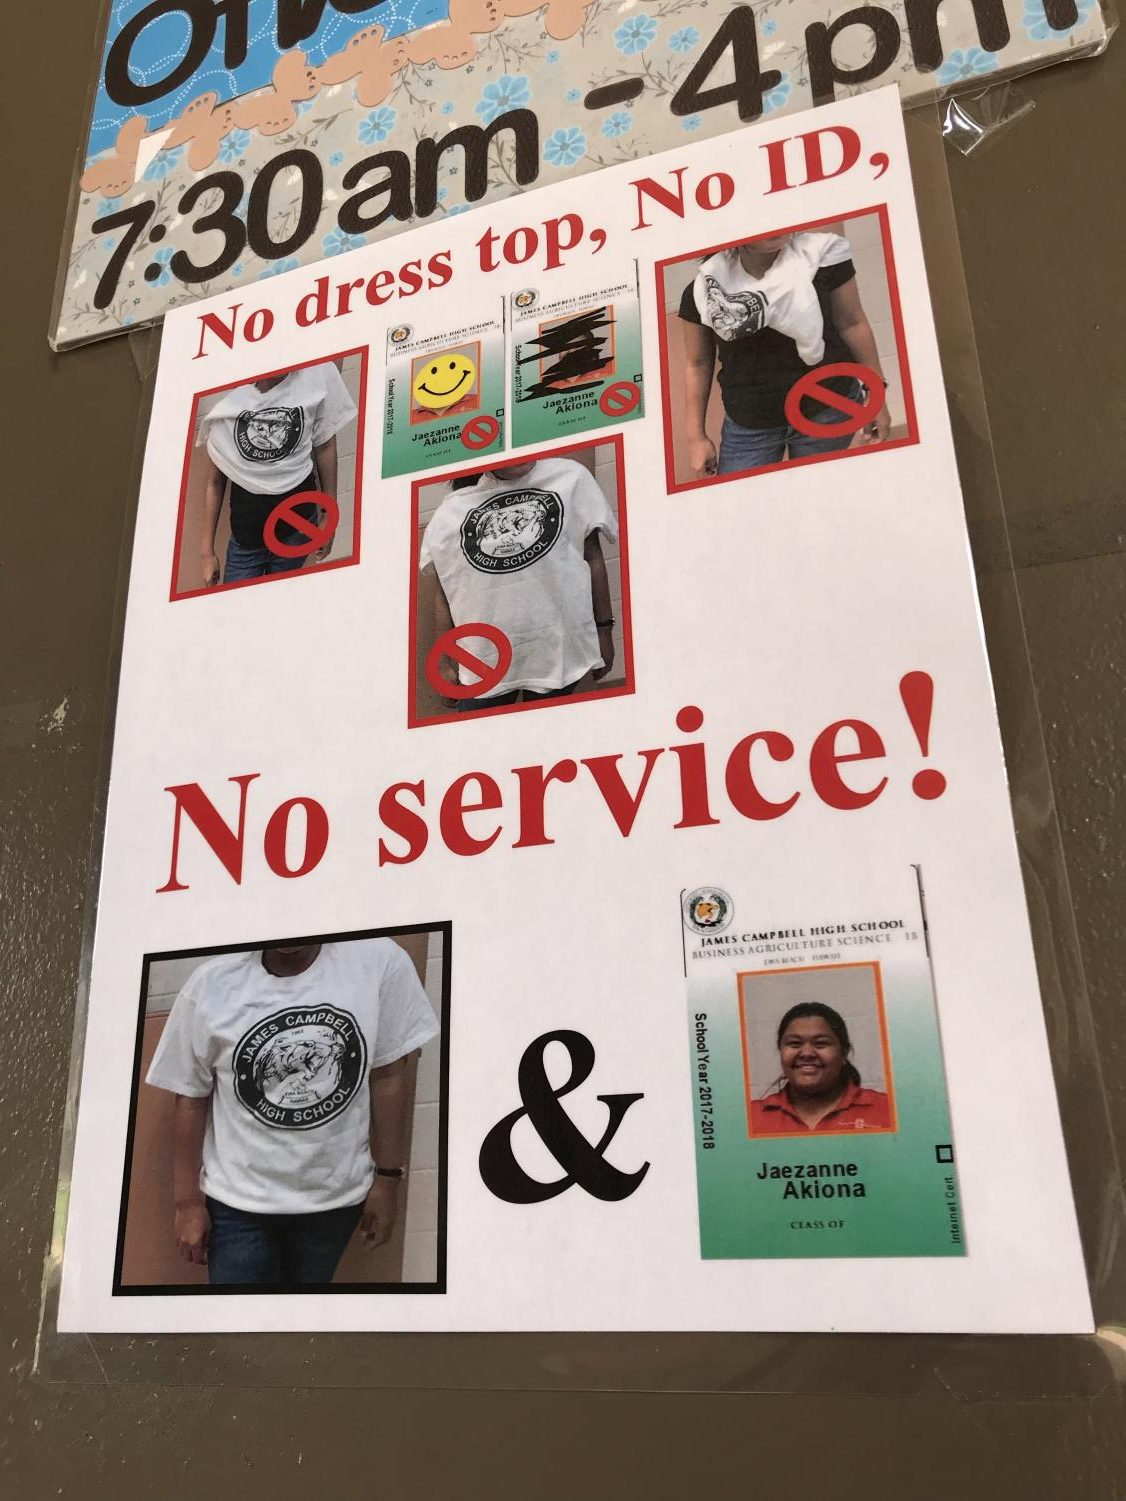 Dress-top enforcement sign at JCHS's office building. Photo by Keona Blanks.